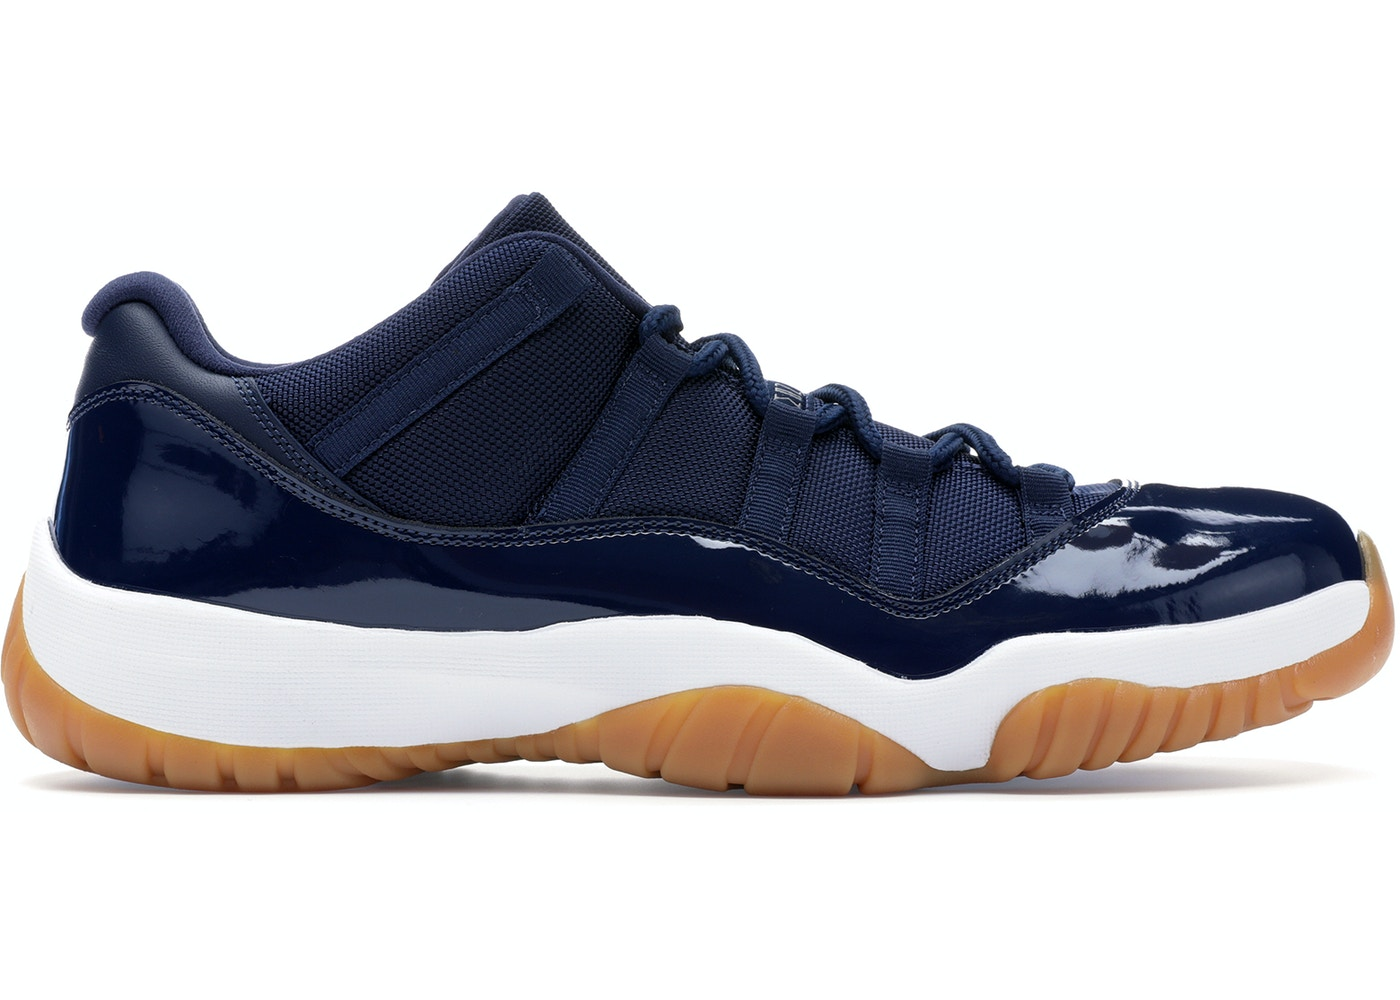 e12d47684f6 Jordan 11 Retro Low Midnight Navy - 528895-405